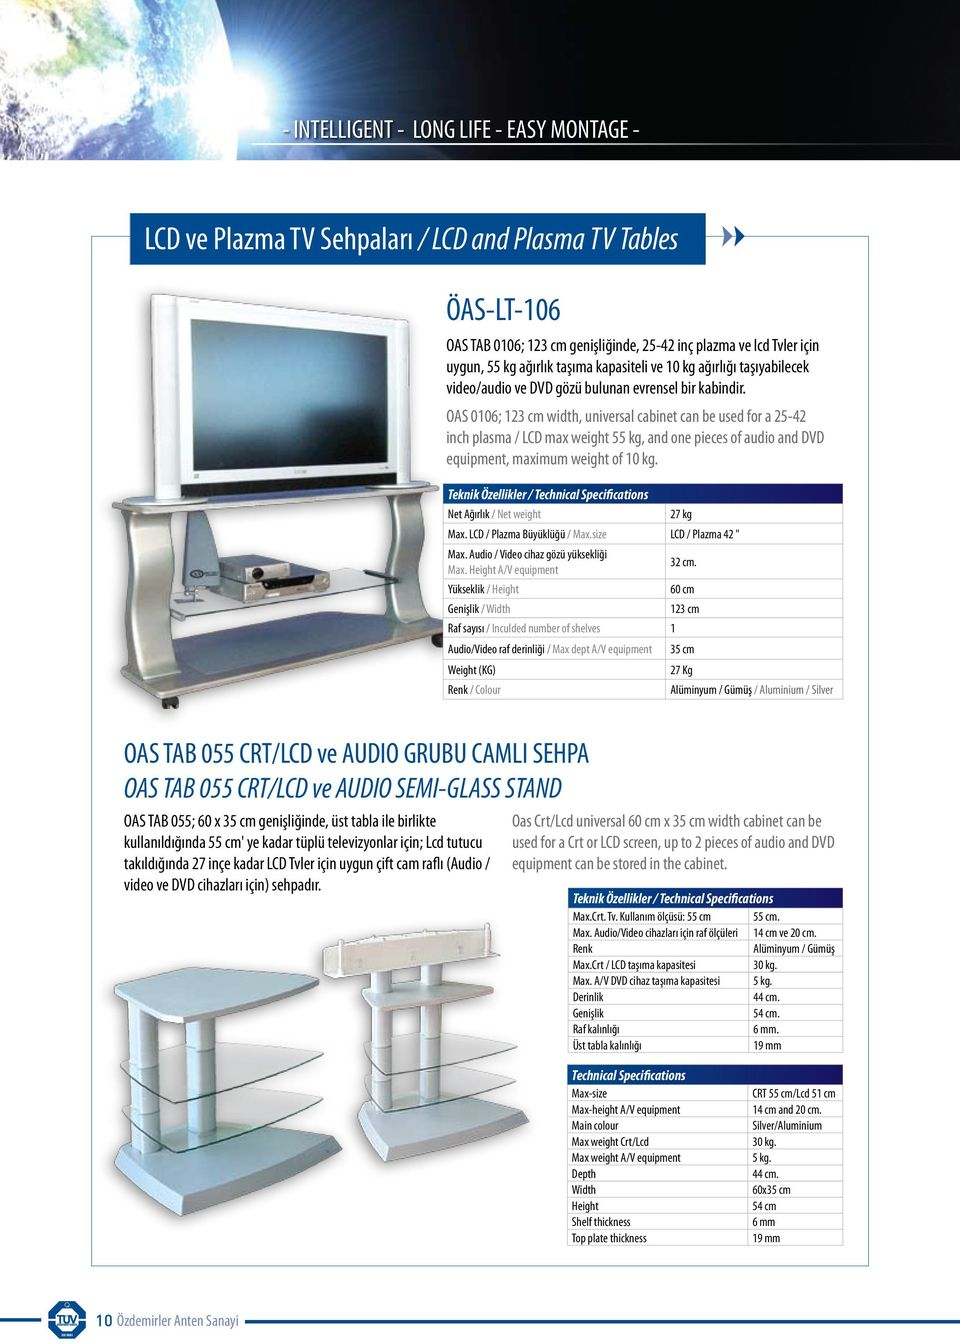 OAS 0106; 123 cm width, universal cabinet can be used for a 25-42 inch plasma / LCD max weight 55 kg, and one pieces of audio and DVD equipment, maximum weight of 10 kg.